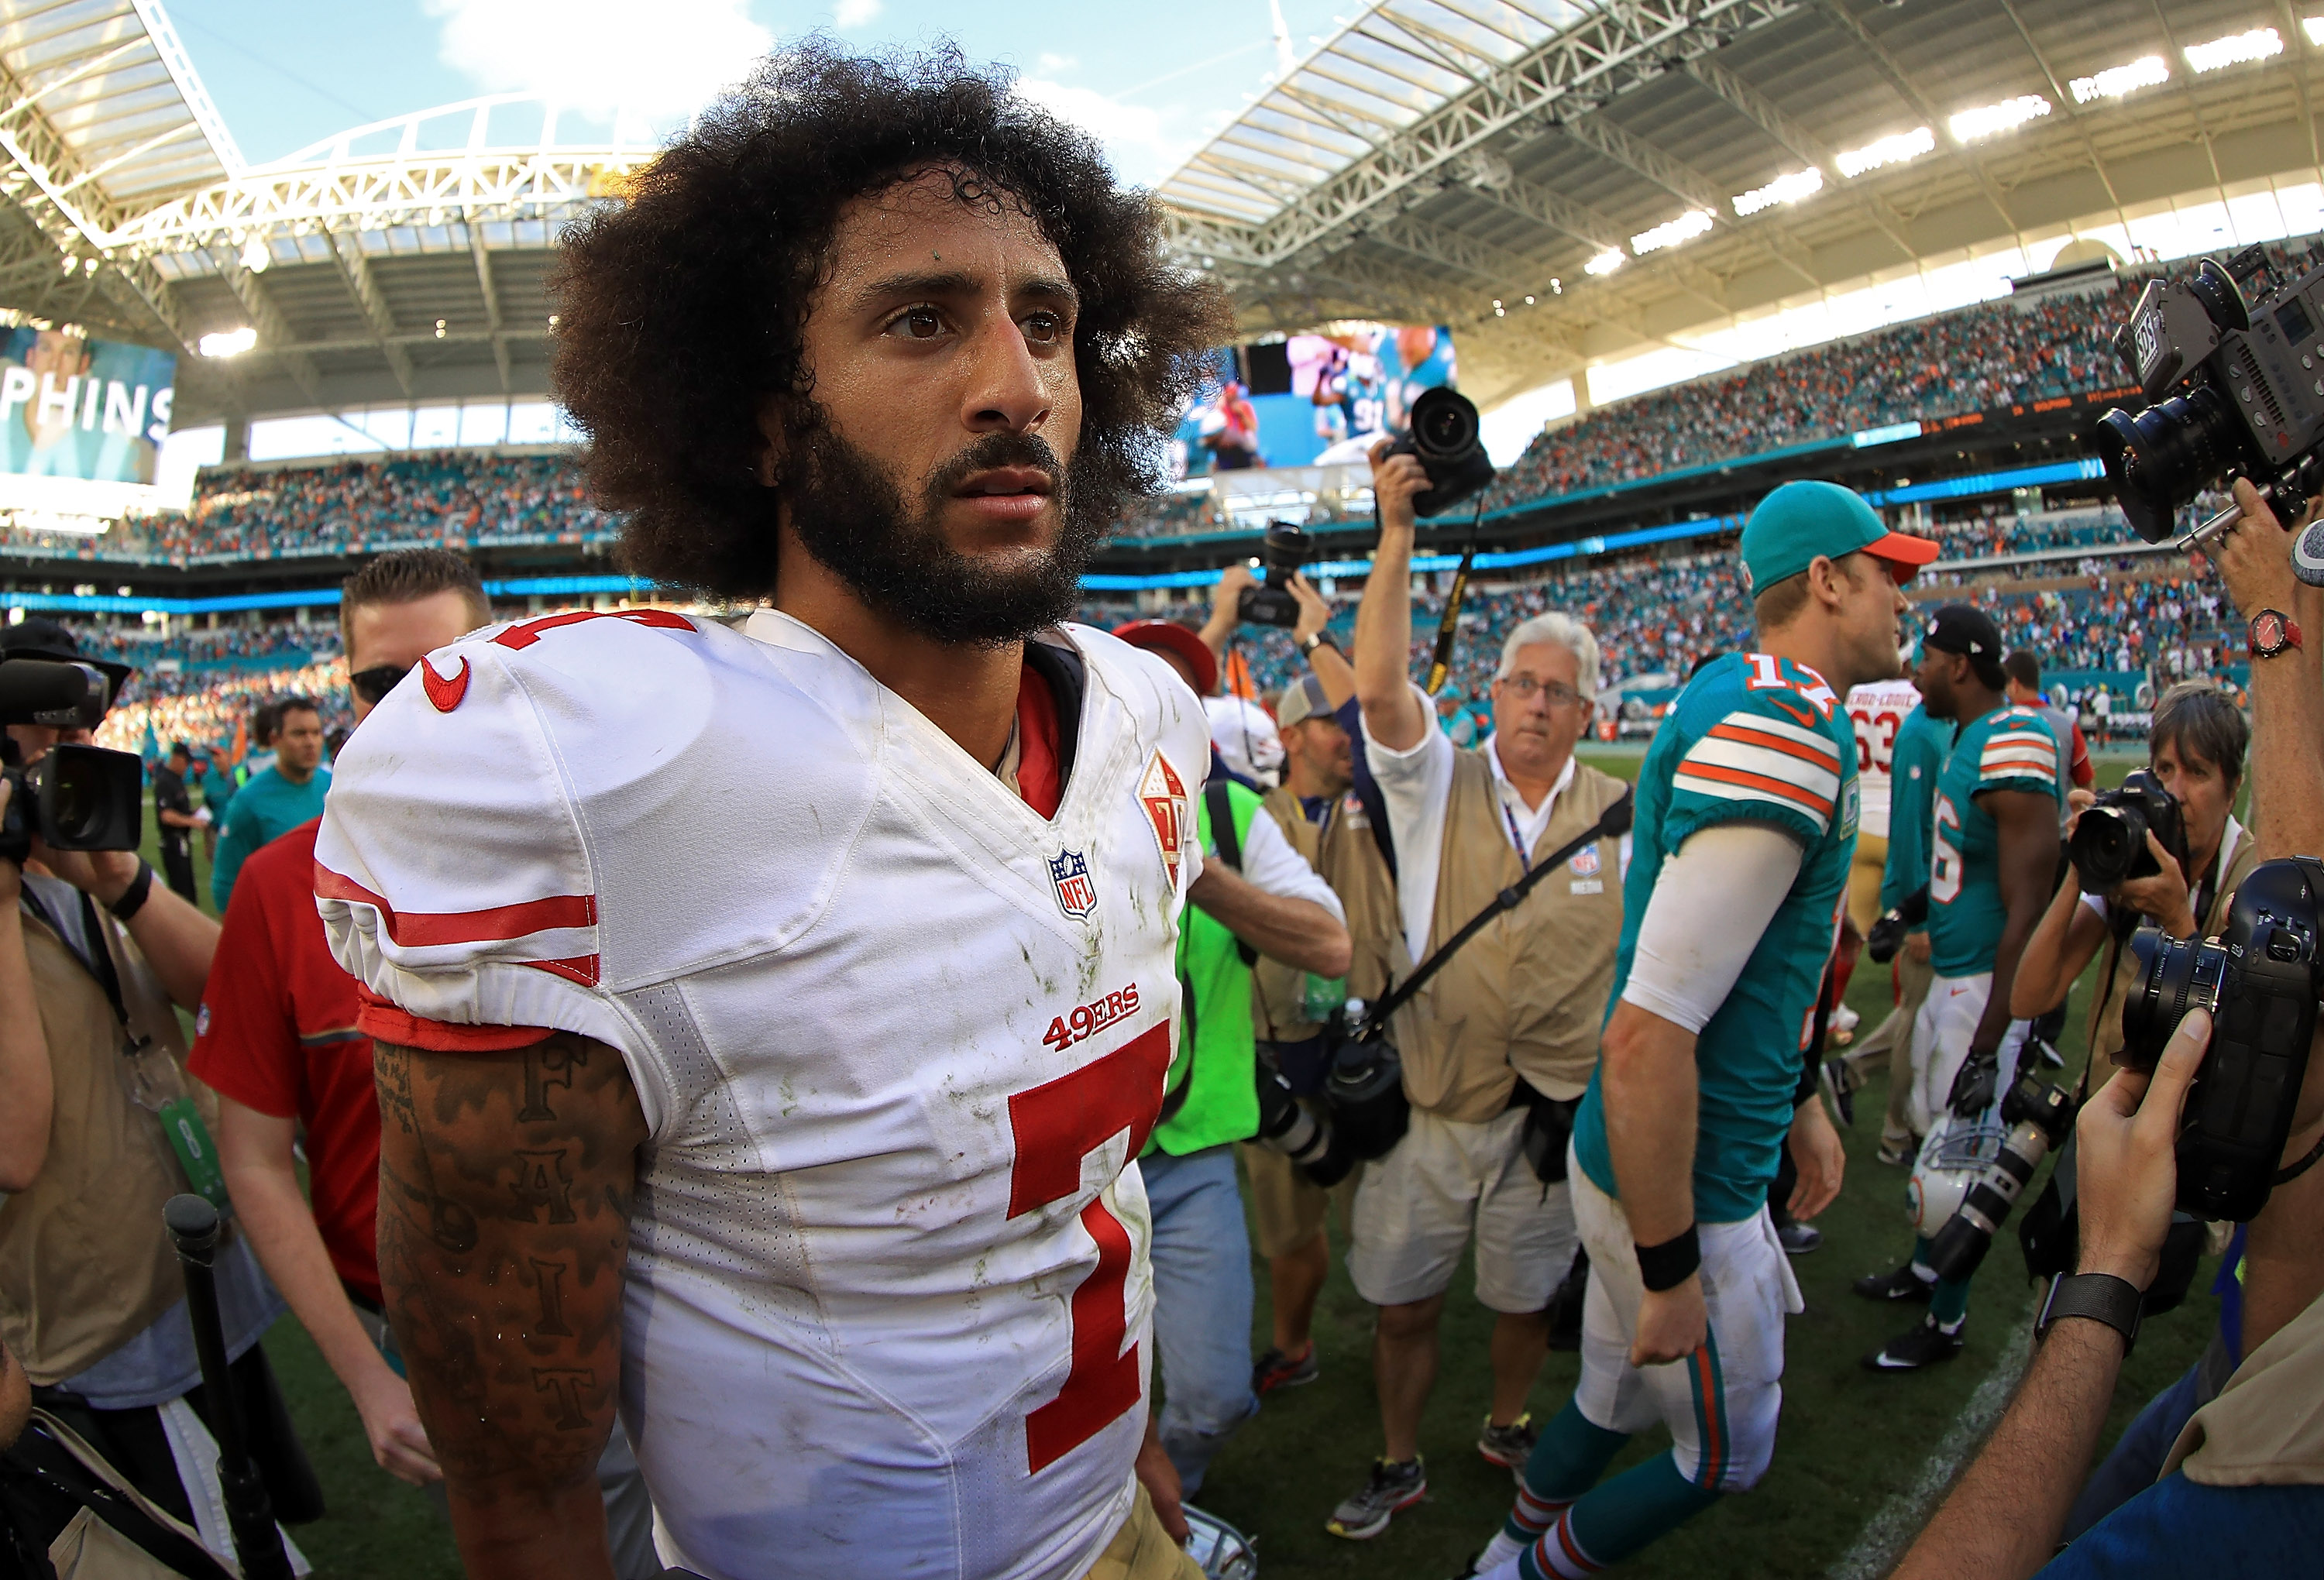 Colin Kaepernick viral video leads Navy SEALs to cut ties to museum